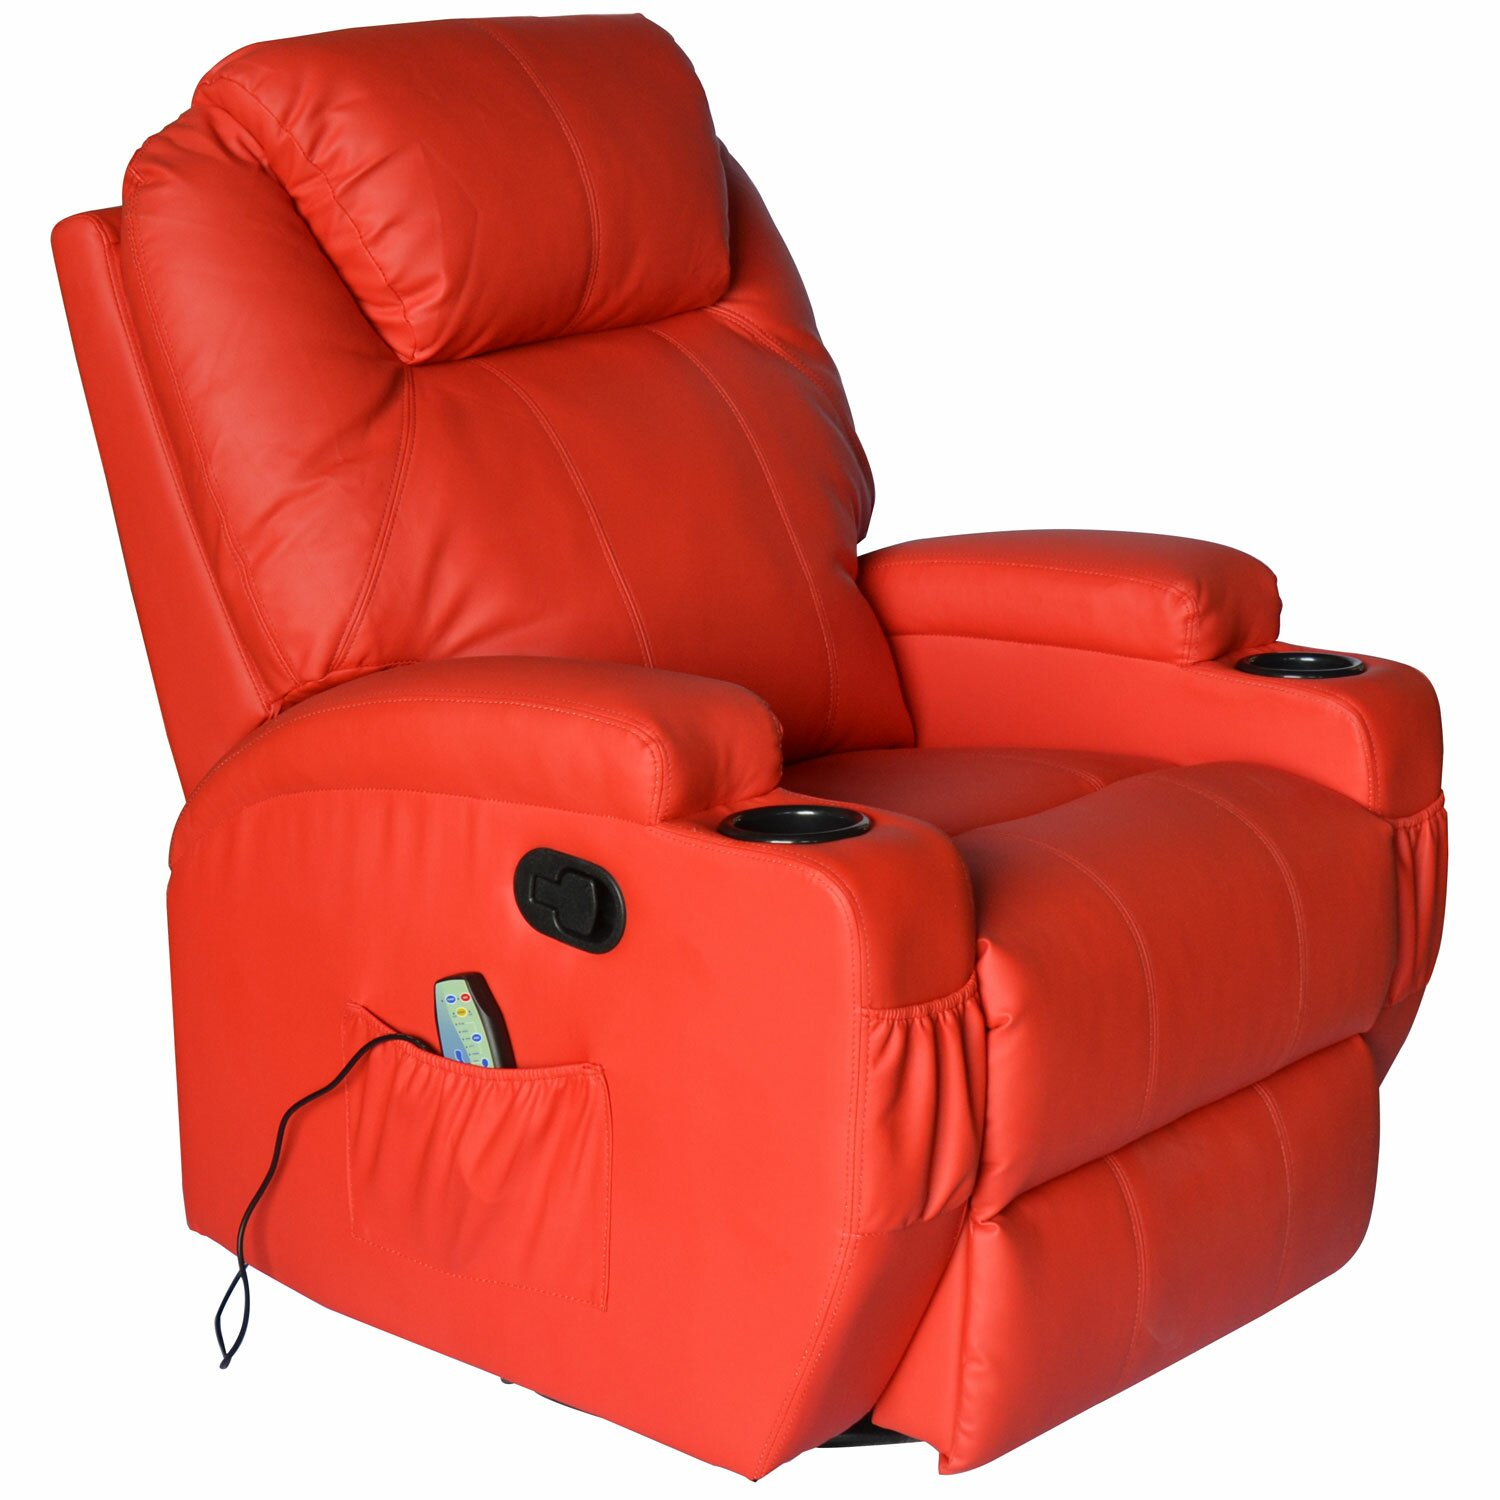 Furniture Living Room Furniture ... Red Recliners Outsunny SKU ...